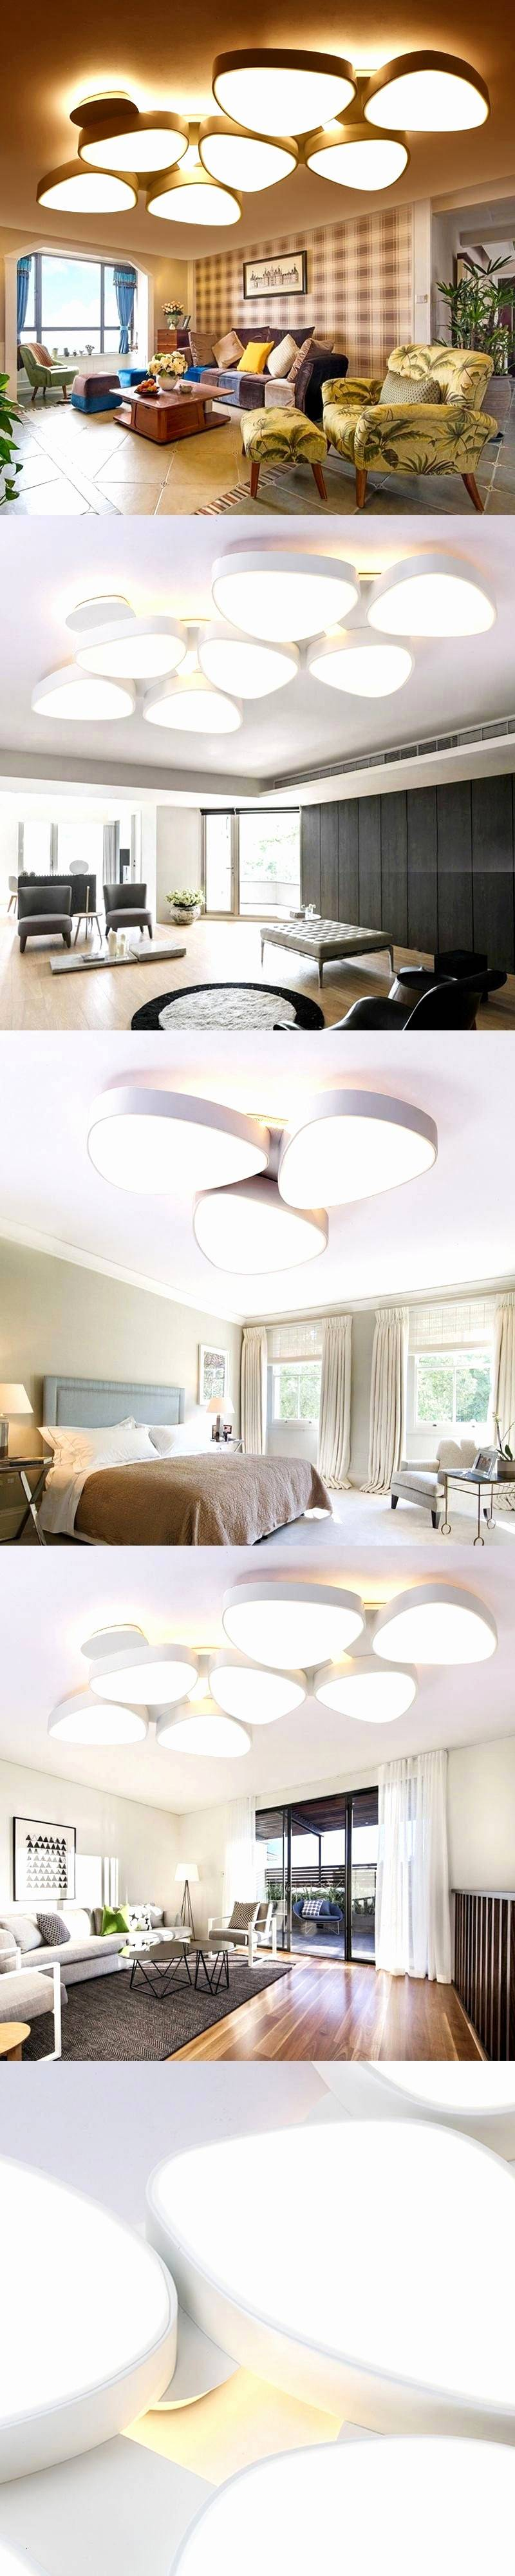 master bedroom ceiling decor beautiful luxury master bedroom ceiling designs sundulqq of master bedroom ceiling decor